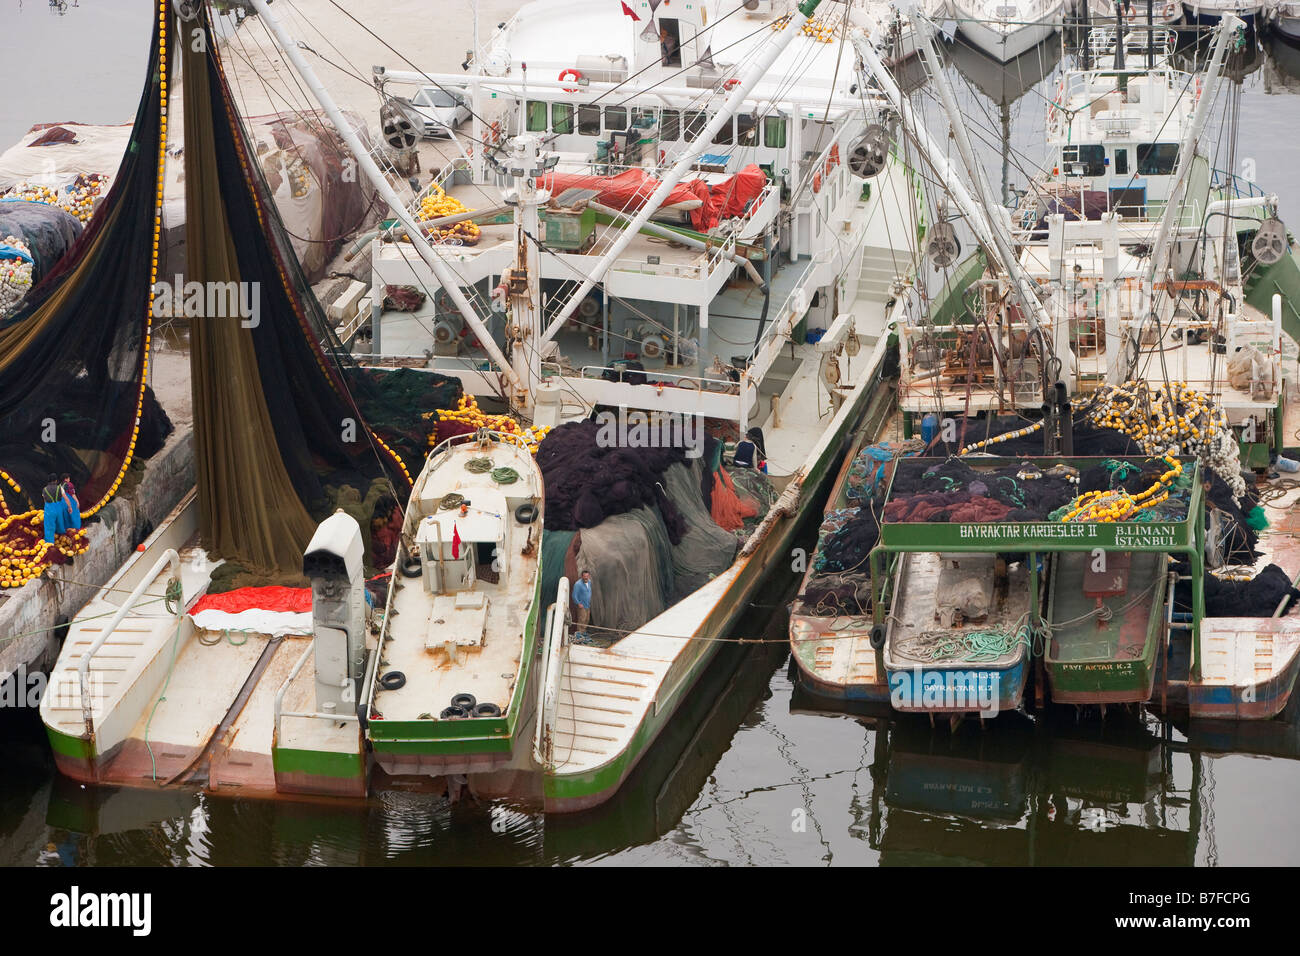 Aerial view of moored fishing boats Buyukcekmece Istanbul Turkey - Stock Image